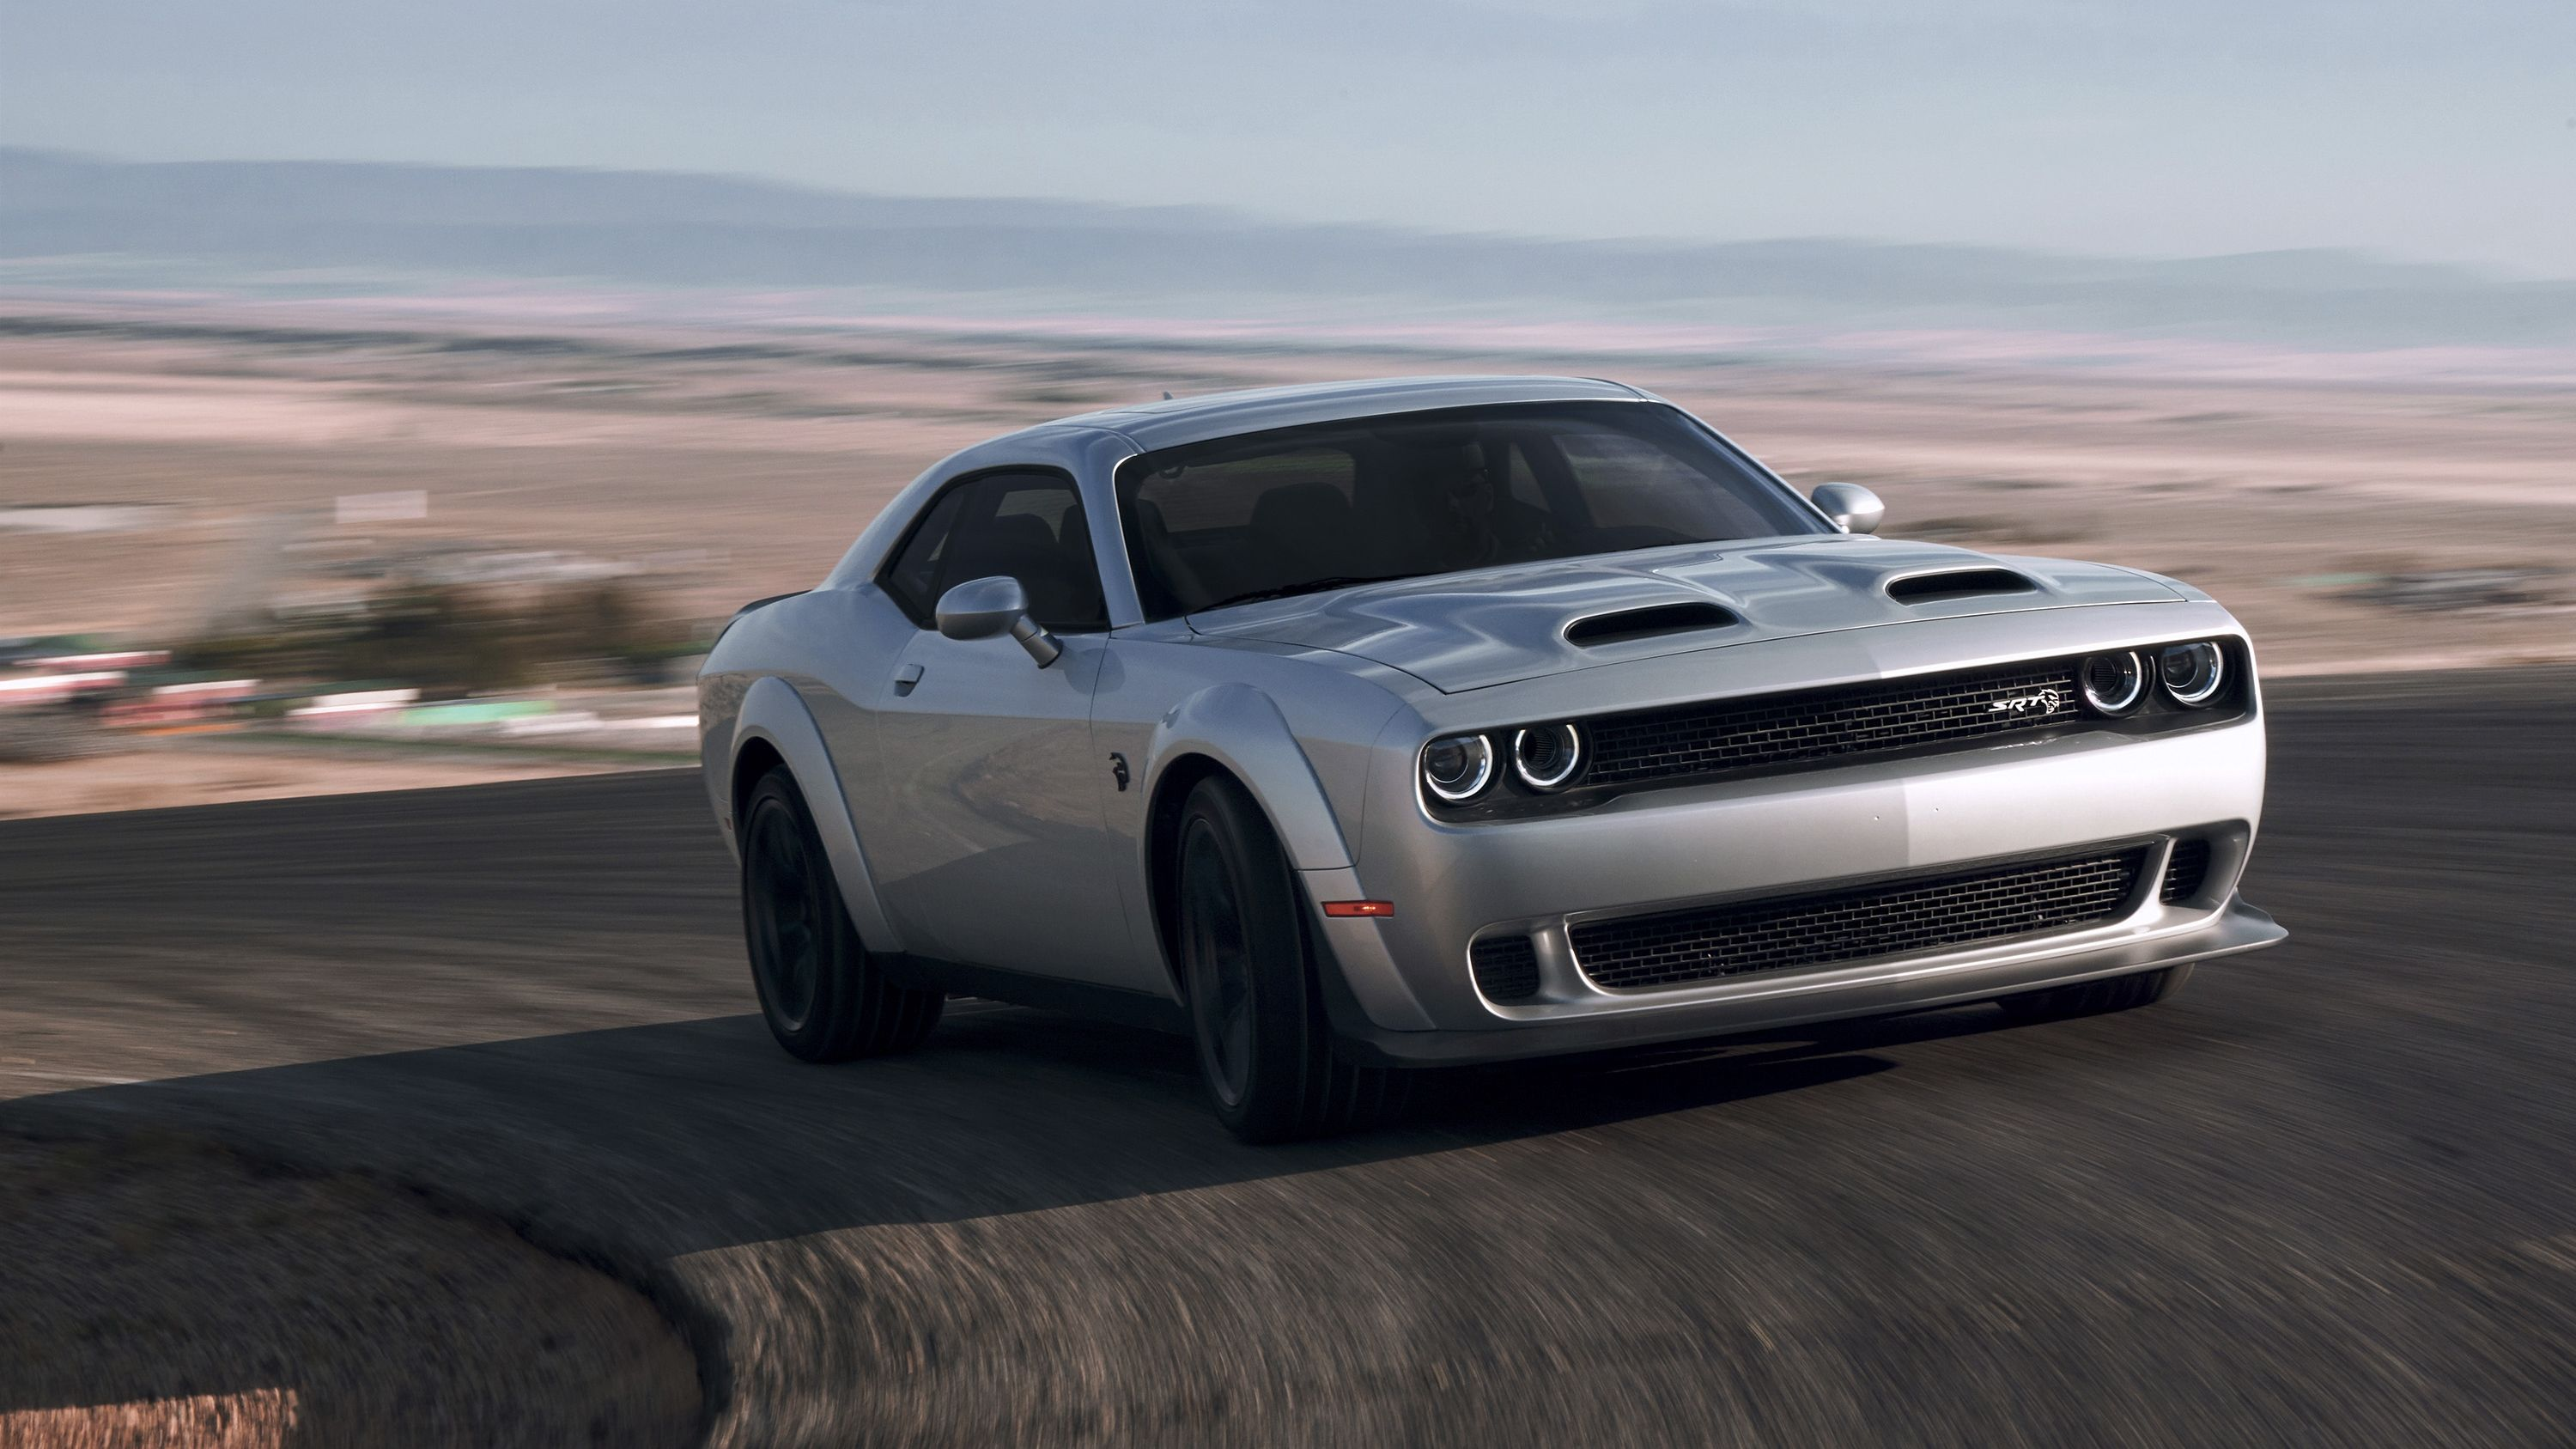 Dodge Challenger Srt Hellcat Redeye Is Now The Most Powerful Muscle Car In Production Top Speed Dodge Challenger Hellcat Challenger Srt Hellcat Dodge Challenger Srt Hellcat